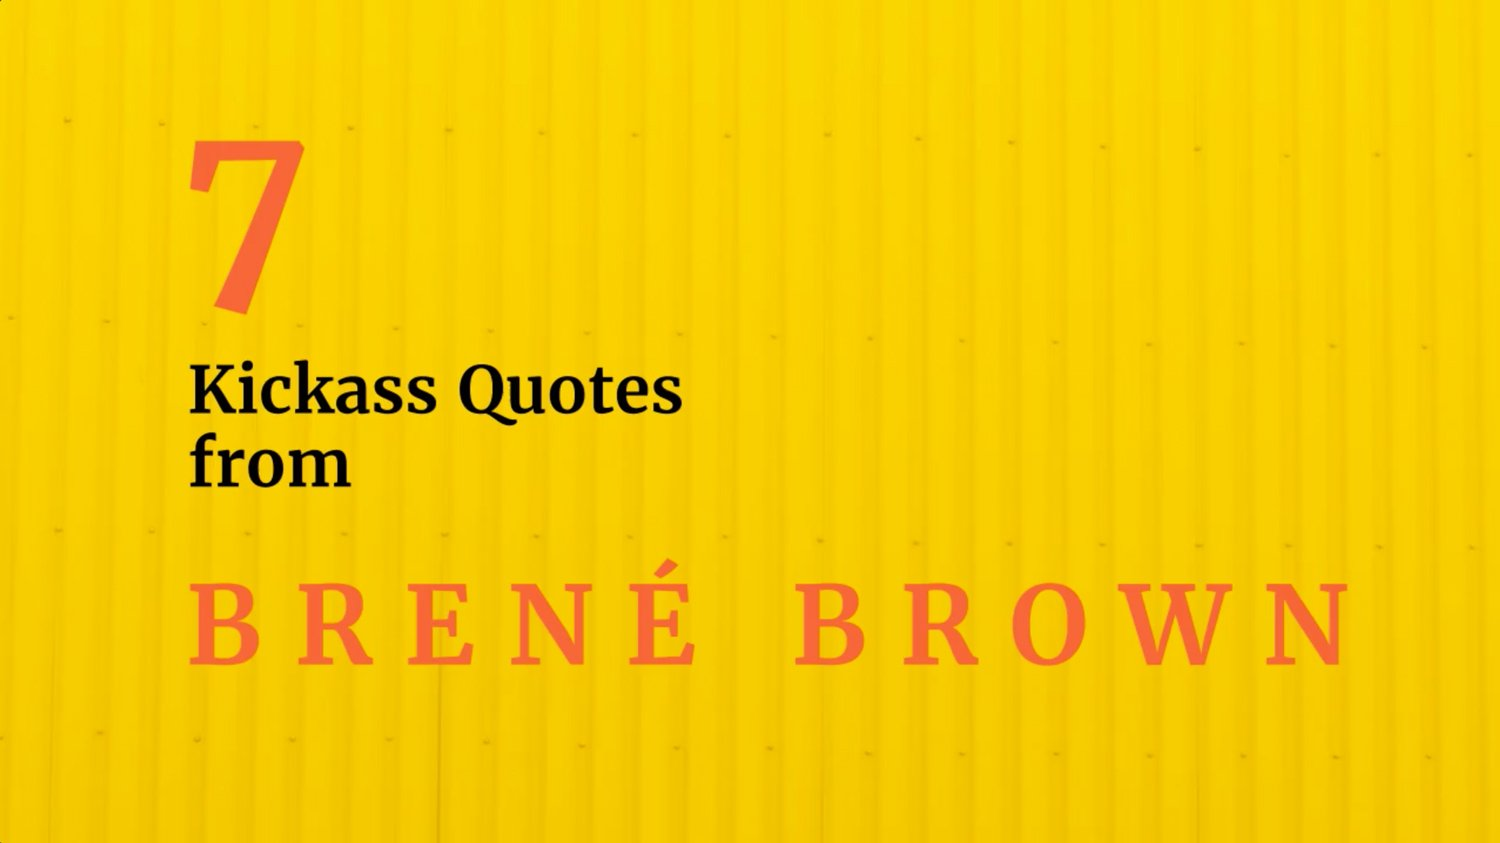 Brené Brown is a kickass quote creator.